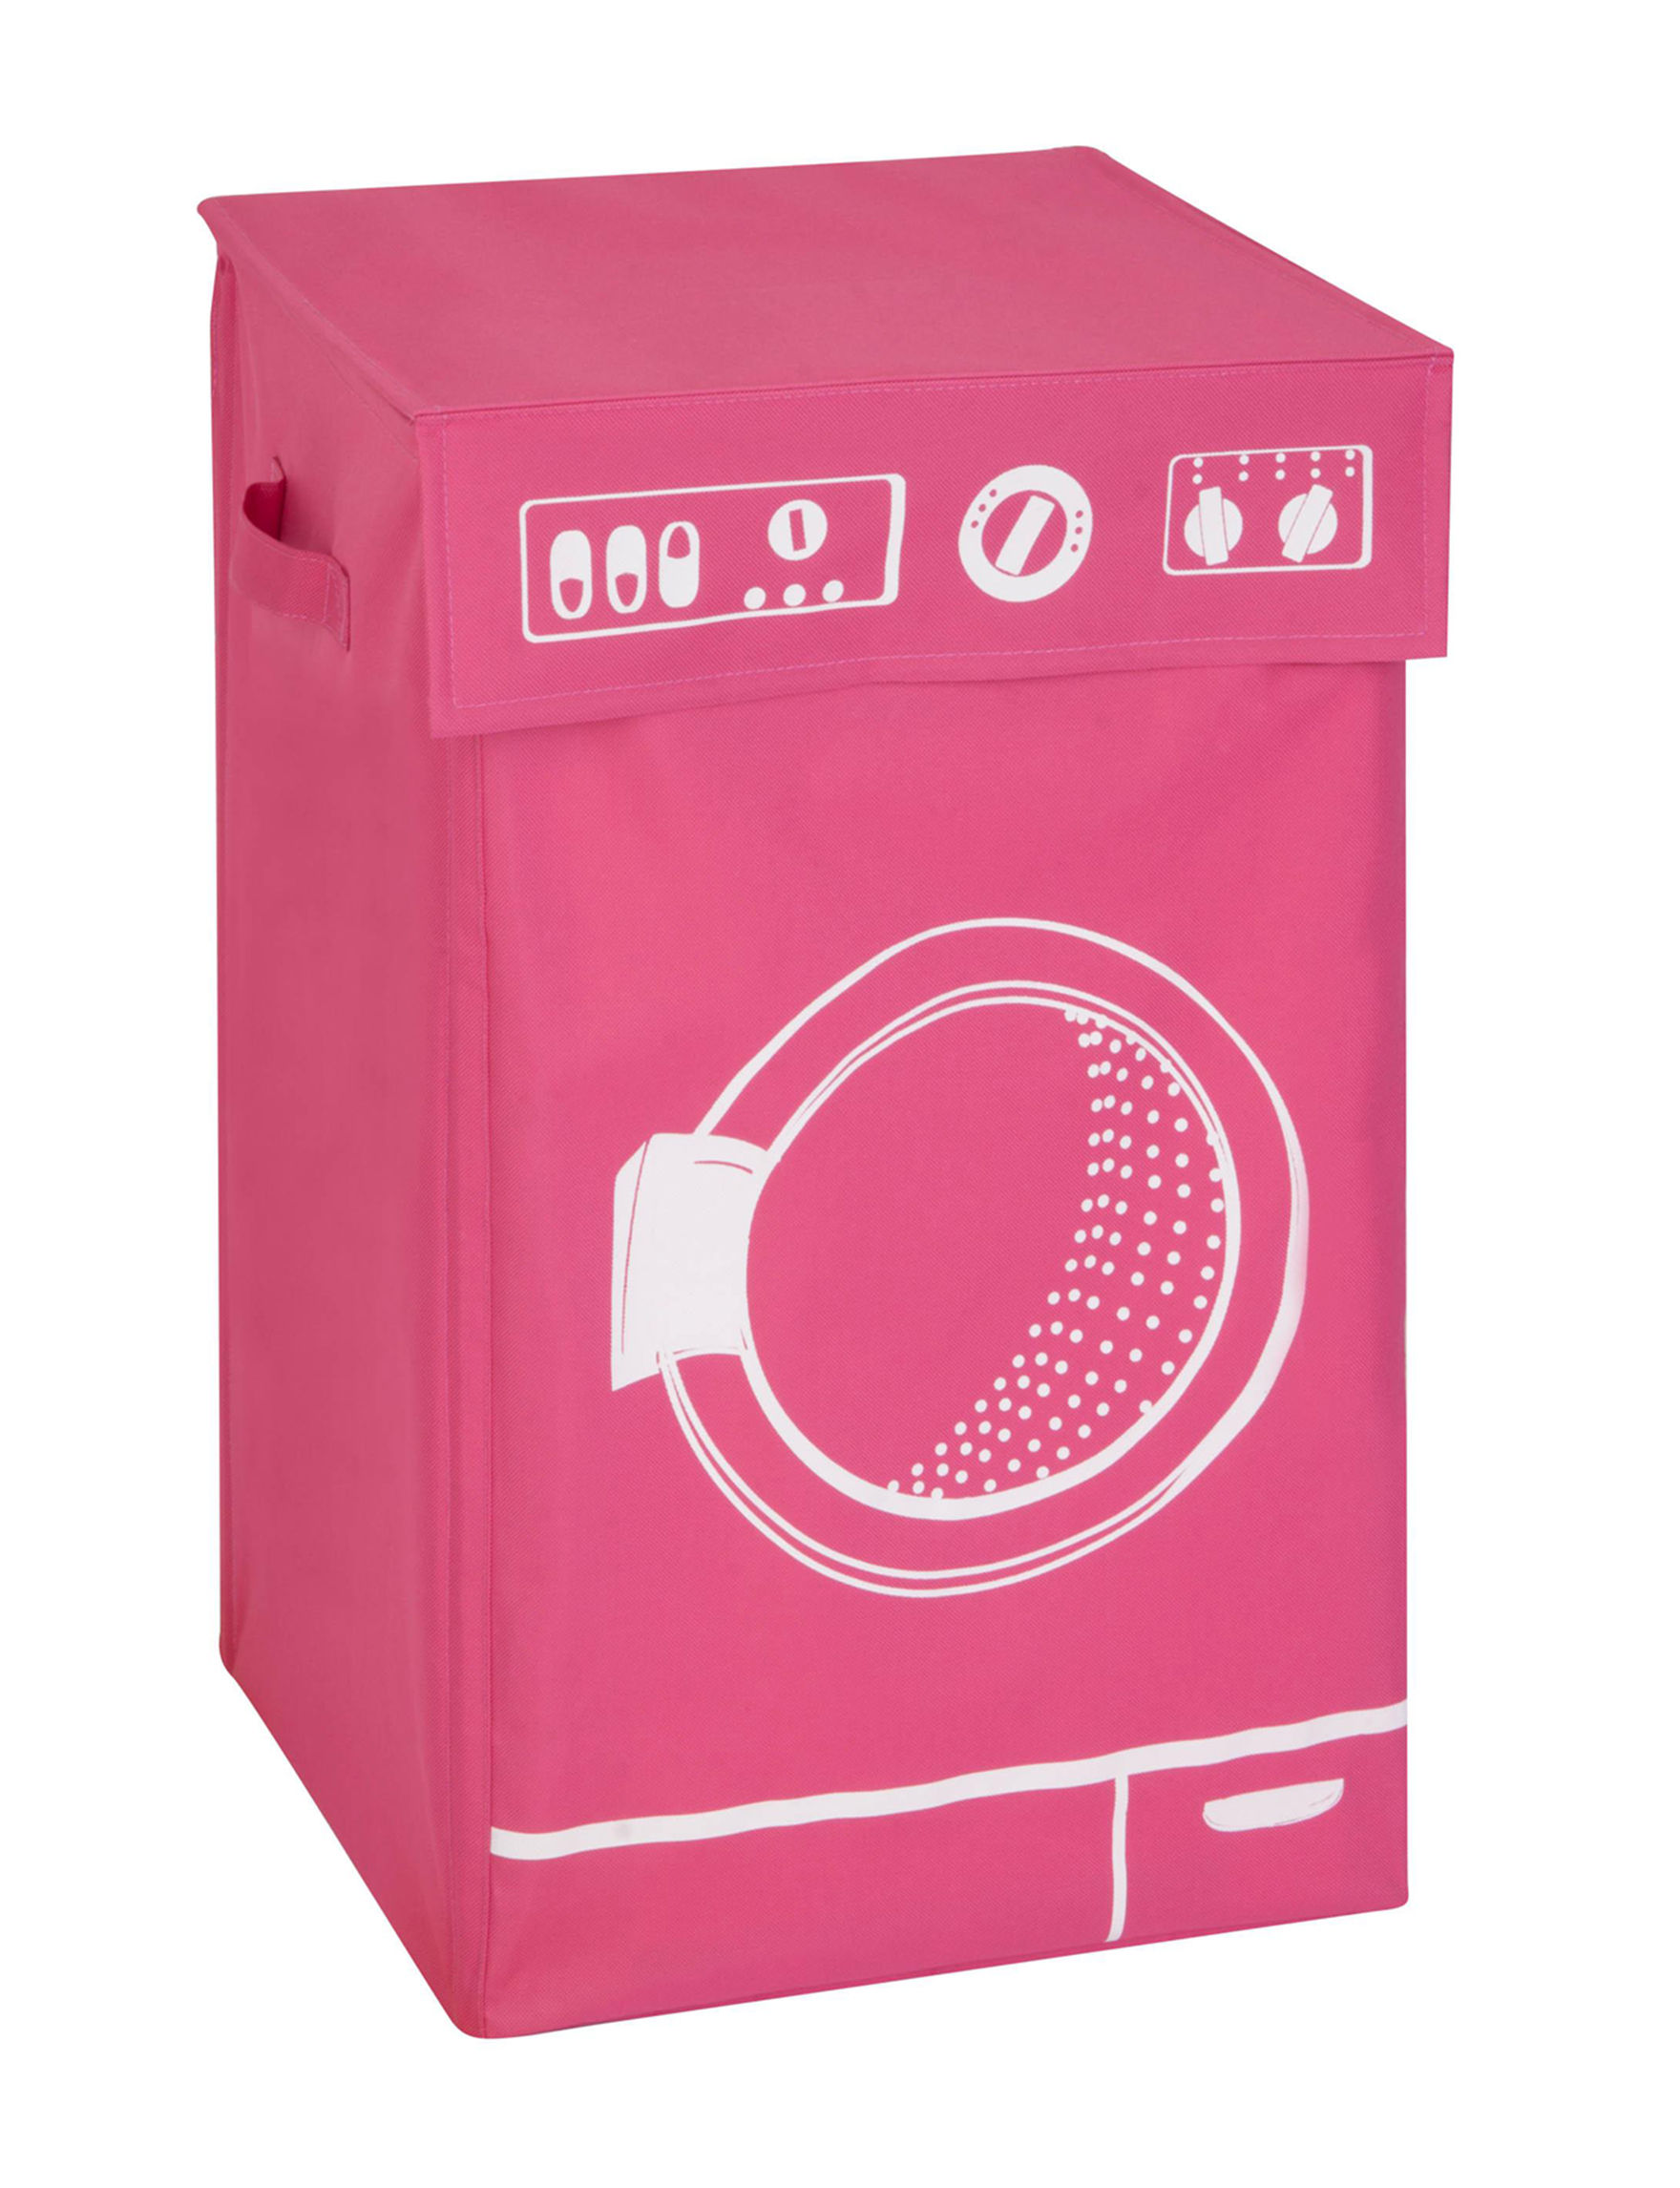 Honey-Can-Do International Pink Laundry Hampers Irons & Clothing Care